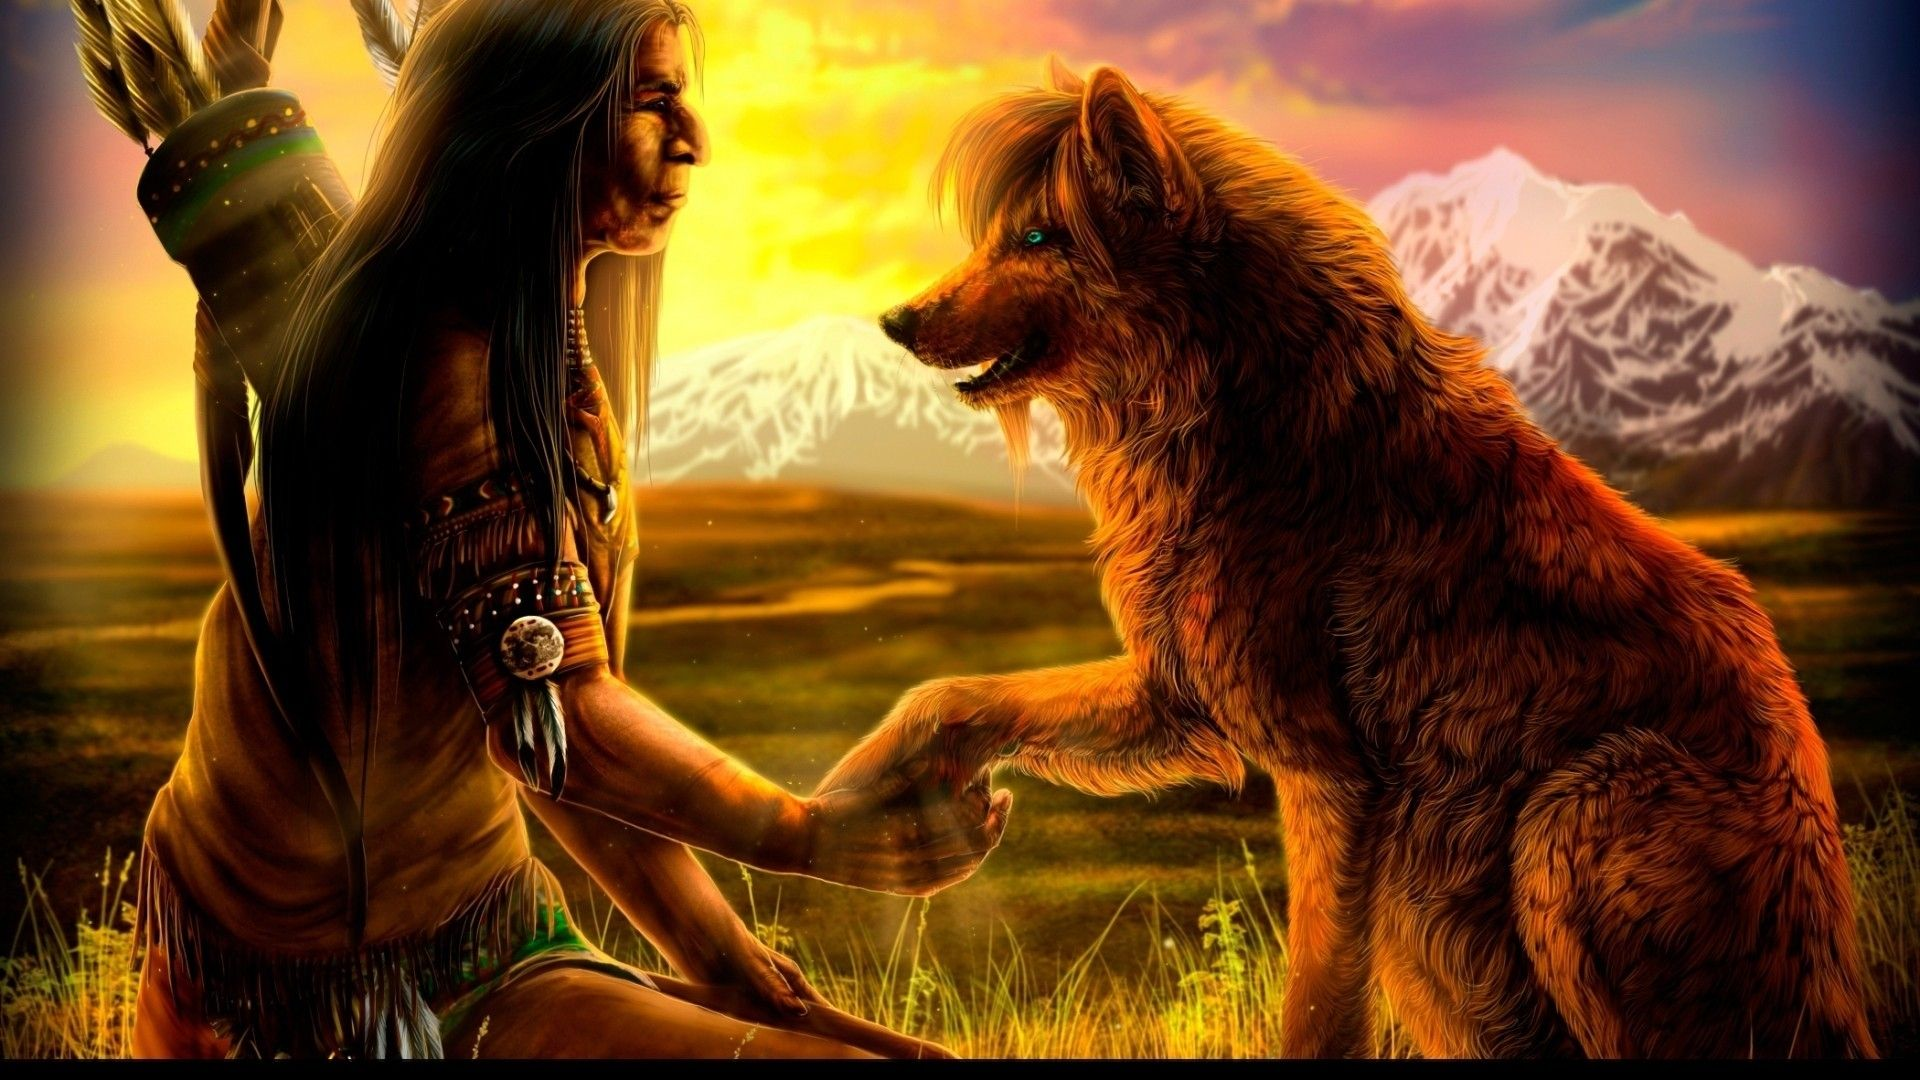 HD Red Indians Wallpaper Download Free 105716 Native